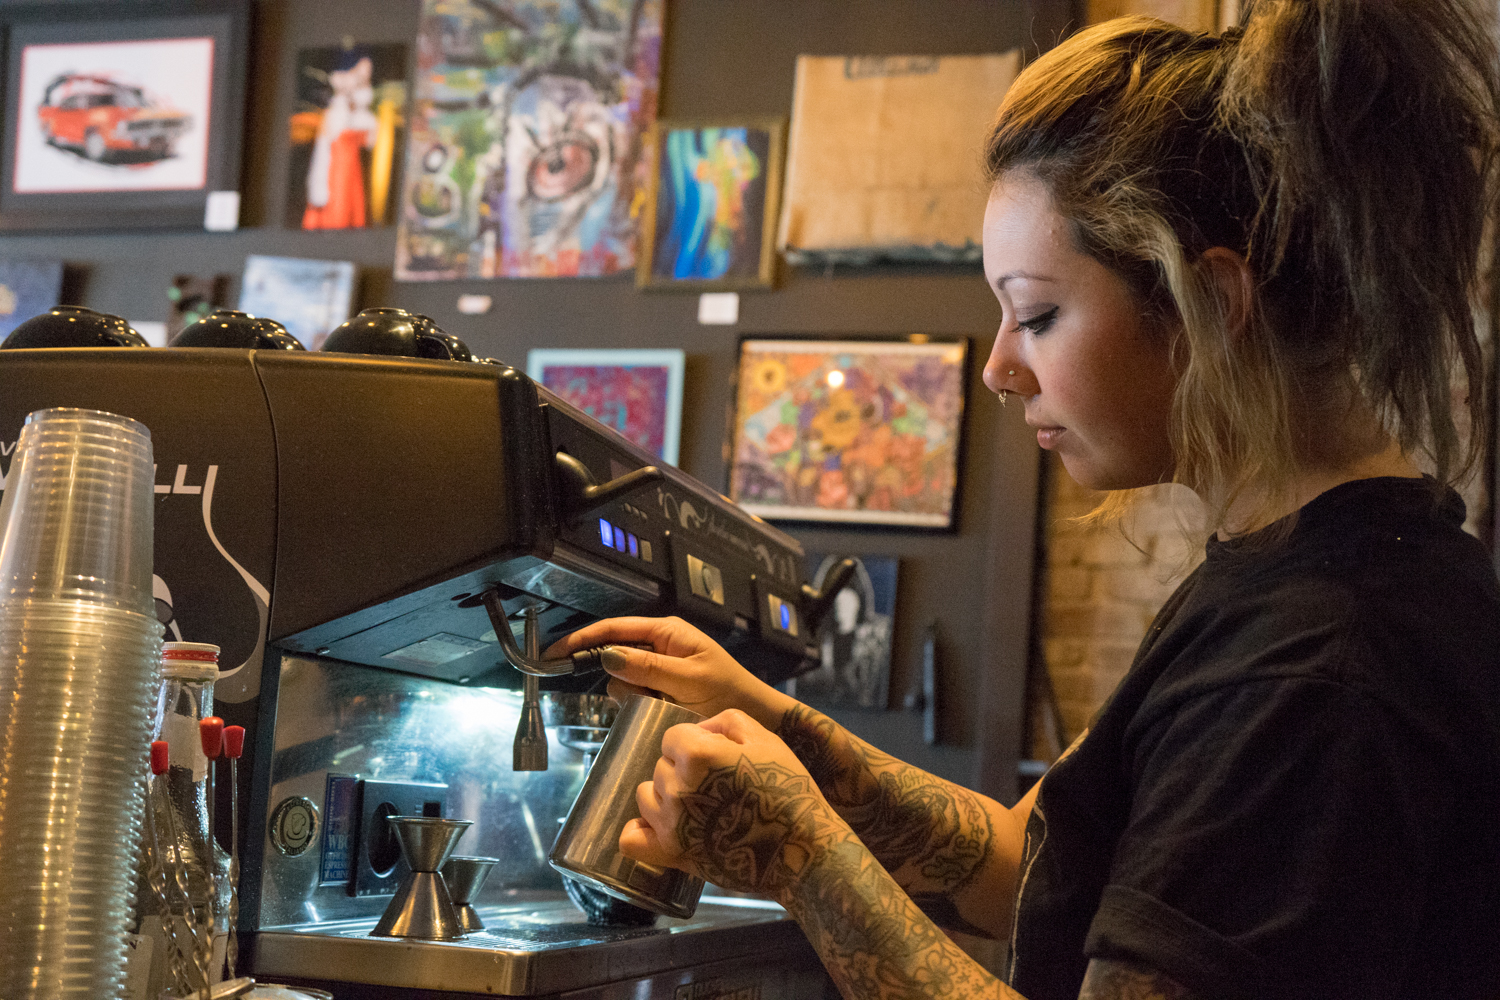 Ashley Corts of Black Forge Coffee. Brian Conway photo.